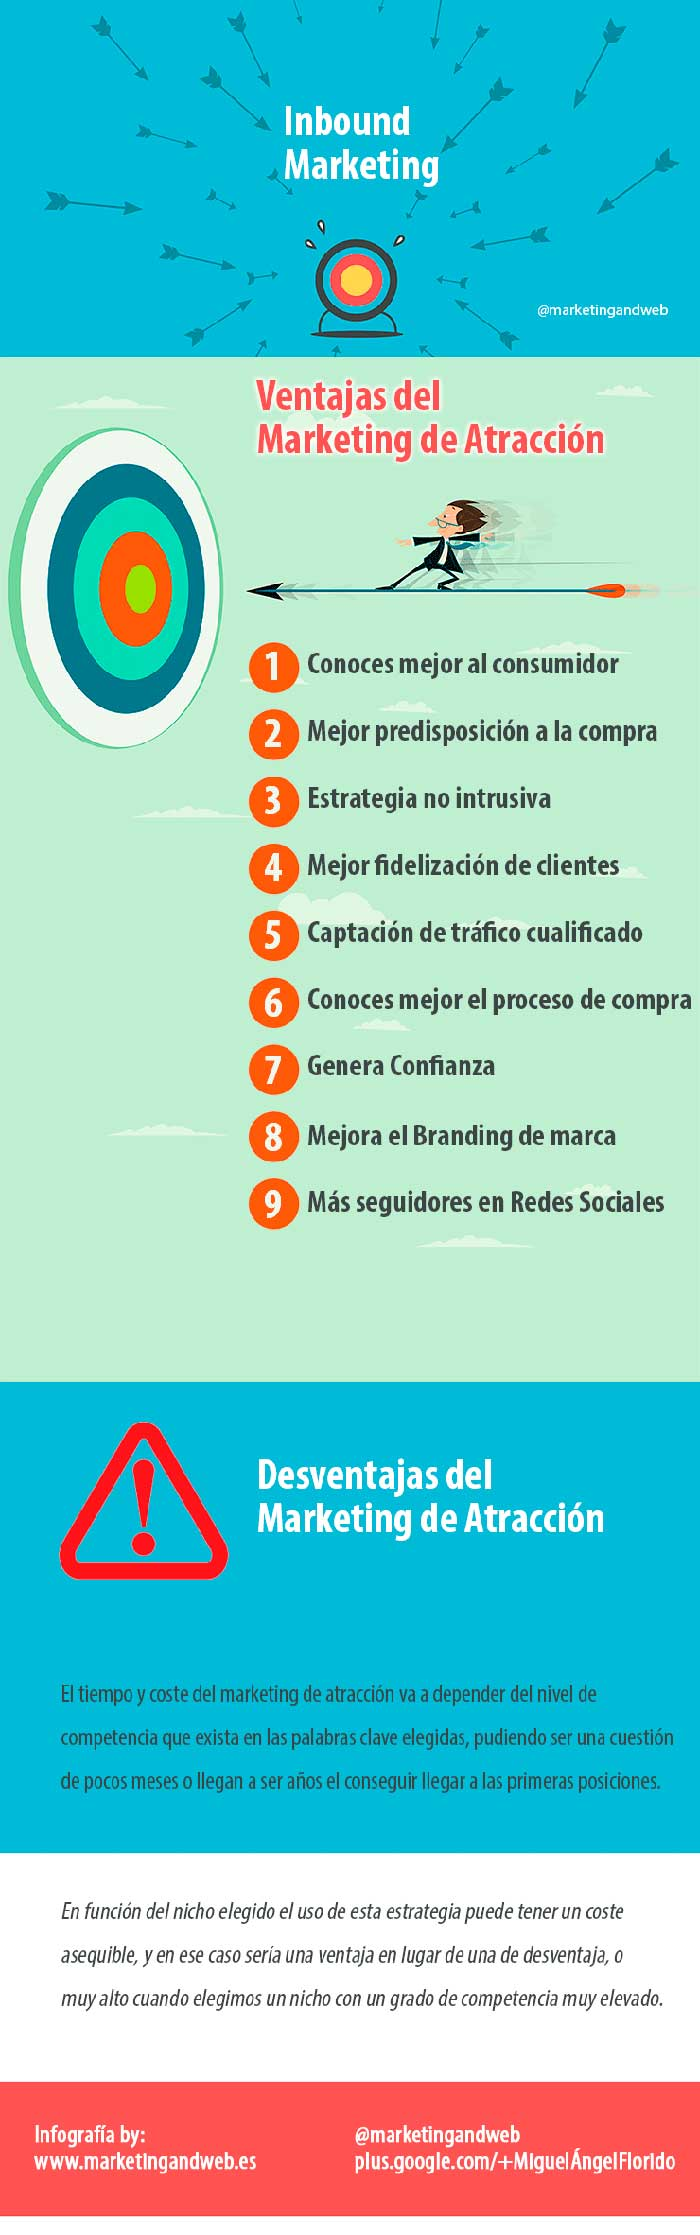 Infografia sobre el Inbound marketing